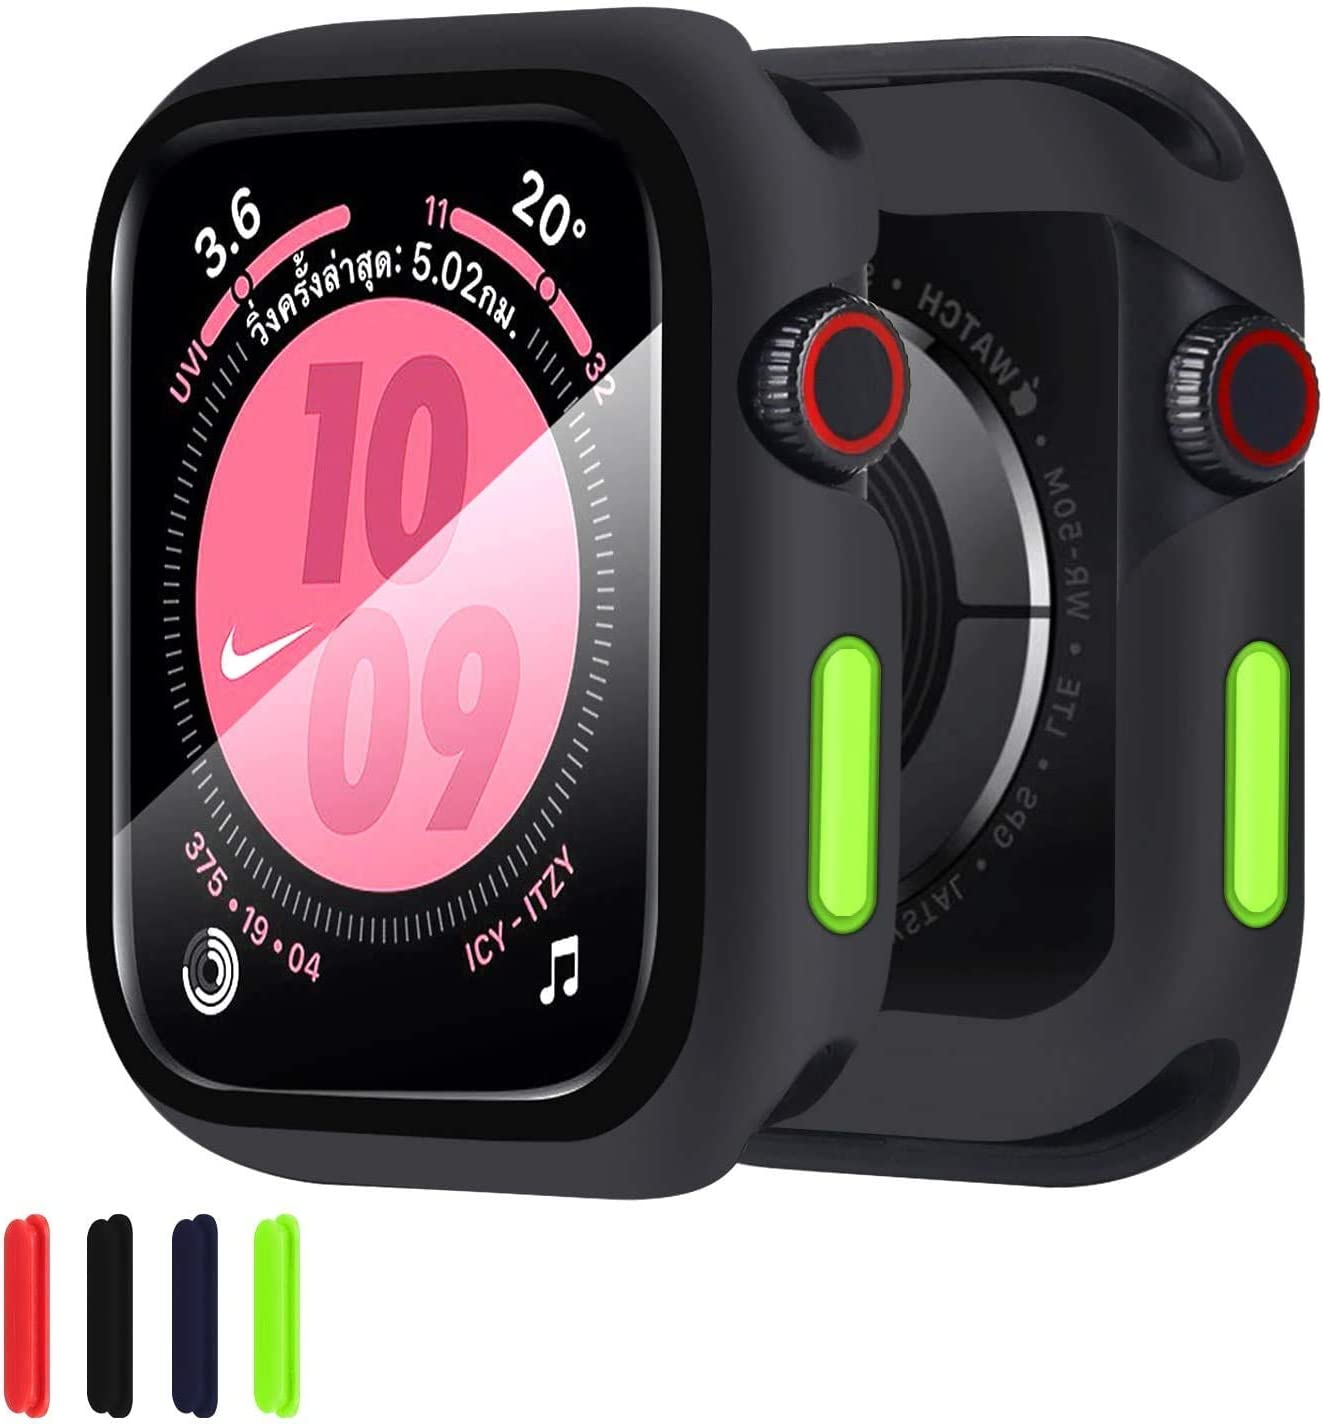 ZXK CO Compatible Apple Watch 44mm Series 6/SE/5/4 Case with Tempered Glass Film, Silicone Case with Scratch Resistant Screen Protector TPU Bumper Case Full Protective Cover for iWatch 44mm - Black